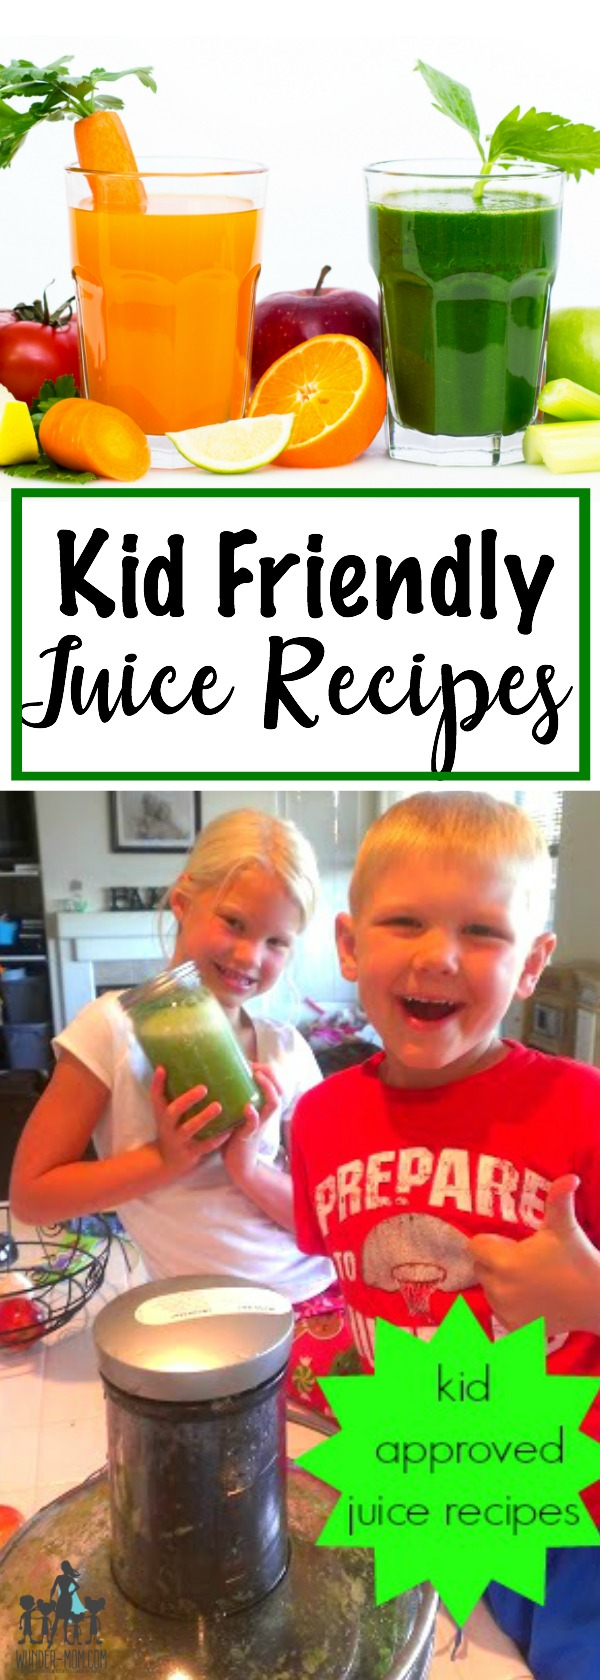 kid friendly juice recipe